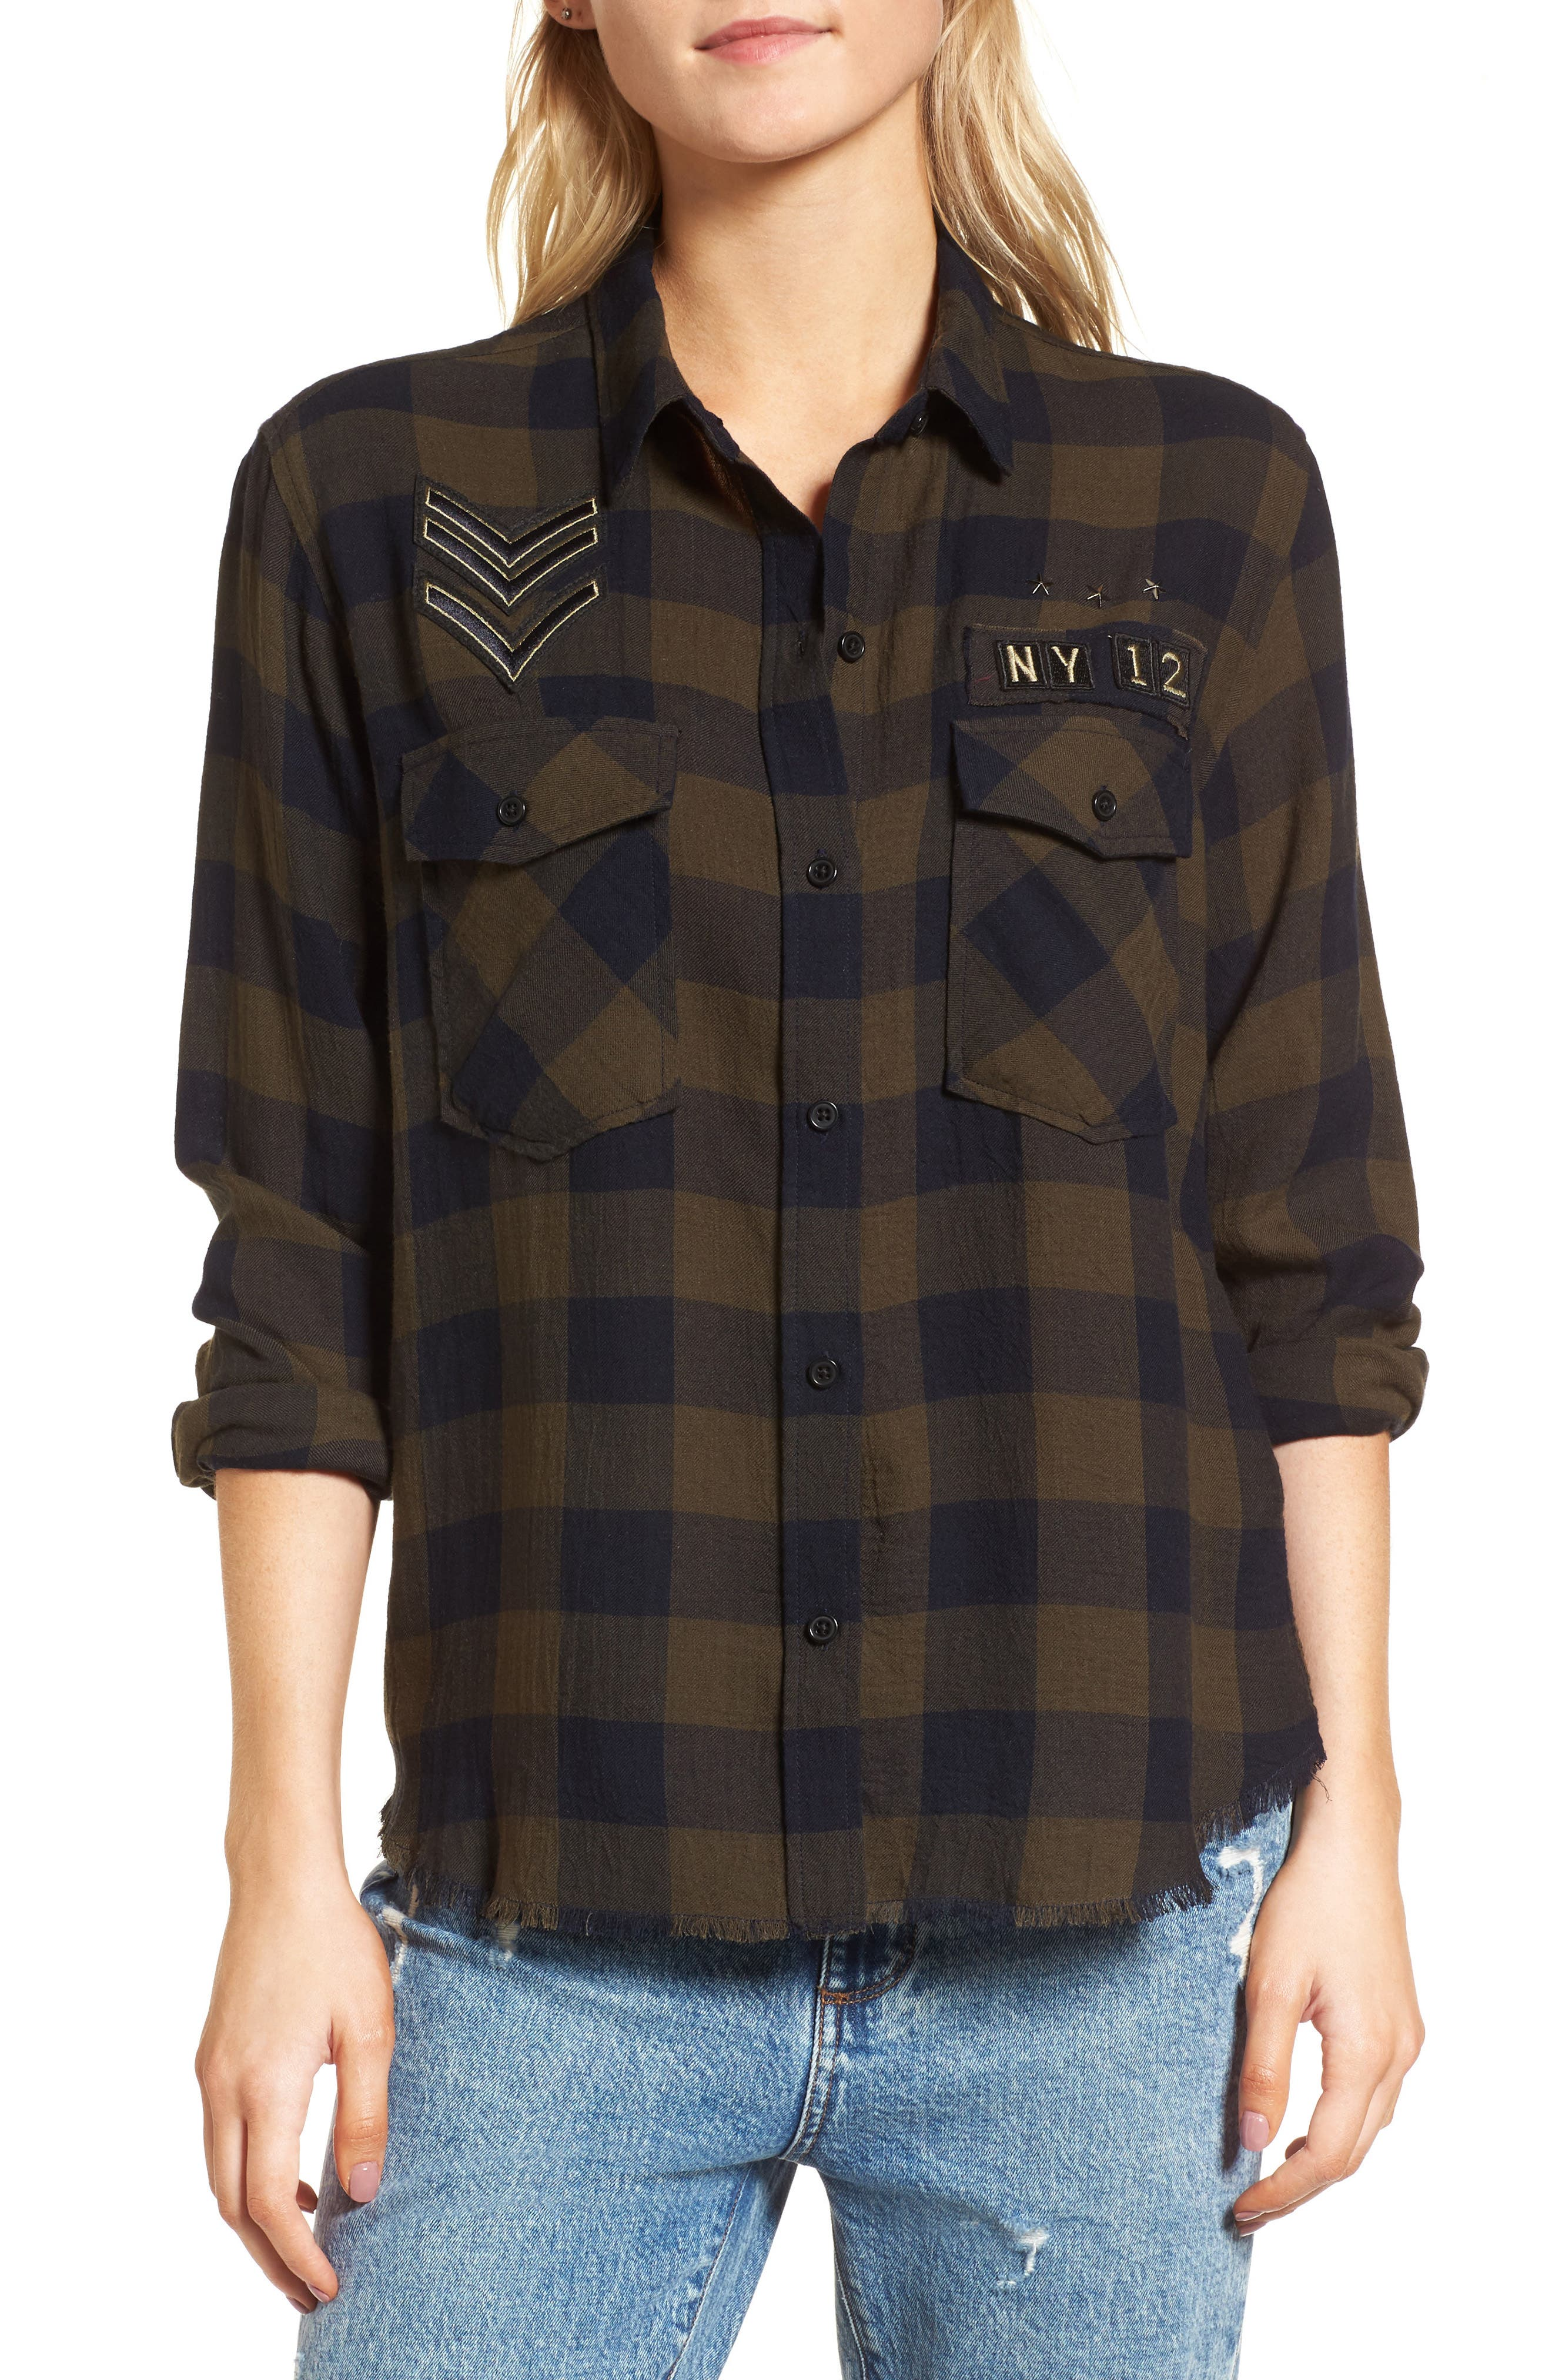 Pepper Boyfriend Shirt,                             Main thumbnail 1, color,                             Juniper/ Black